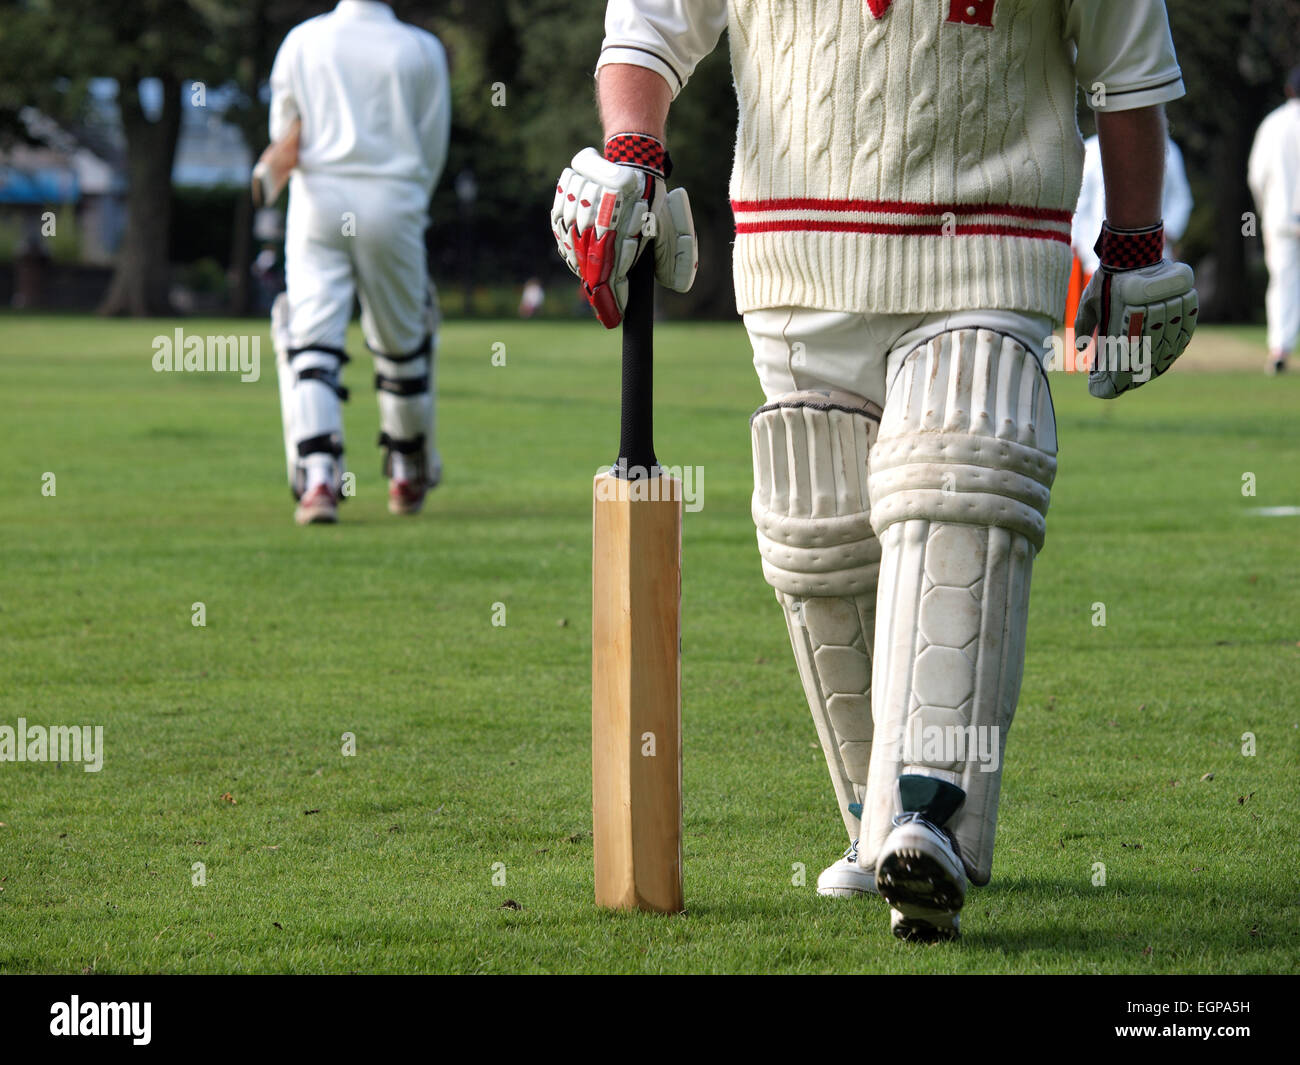 Playing cricket at a local league match Stock Photo